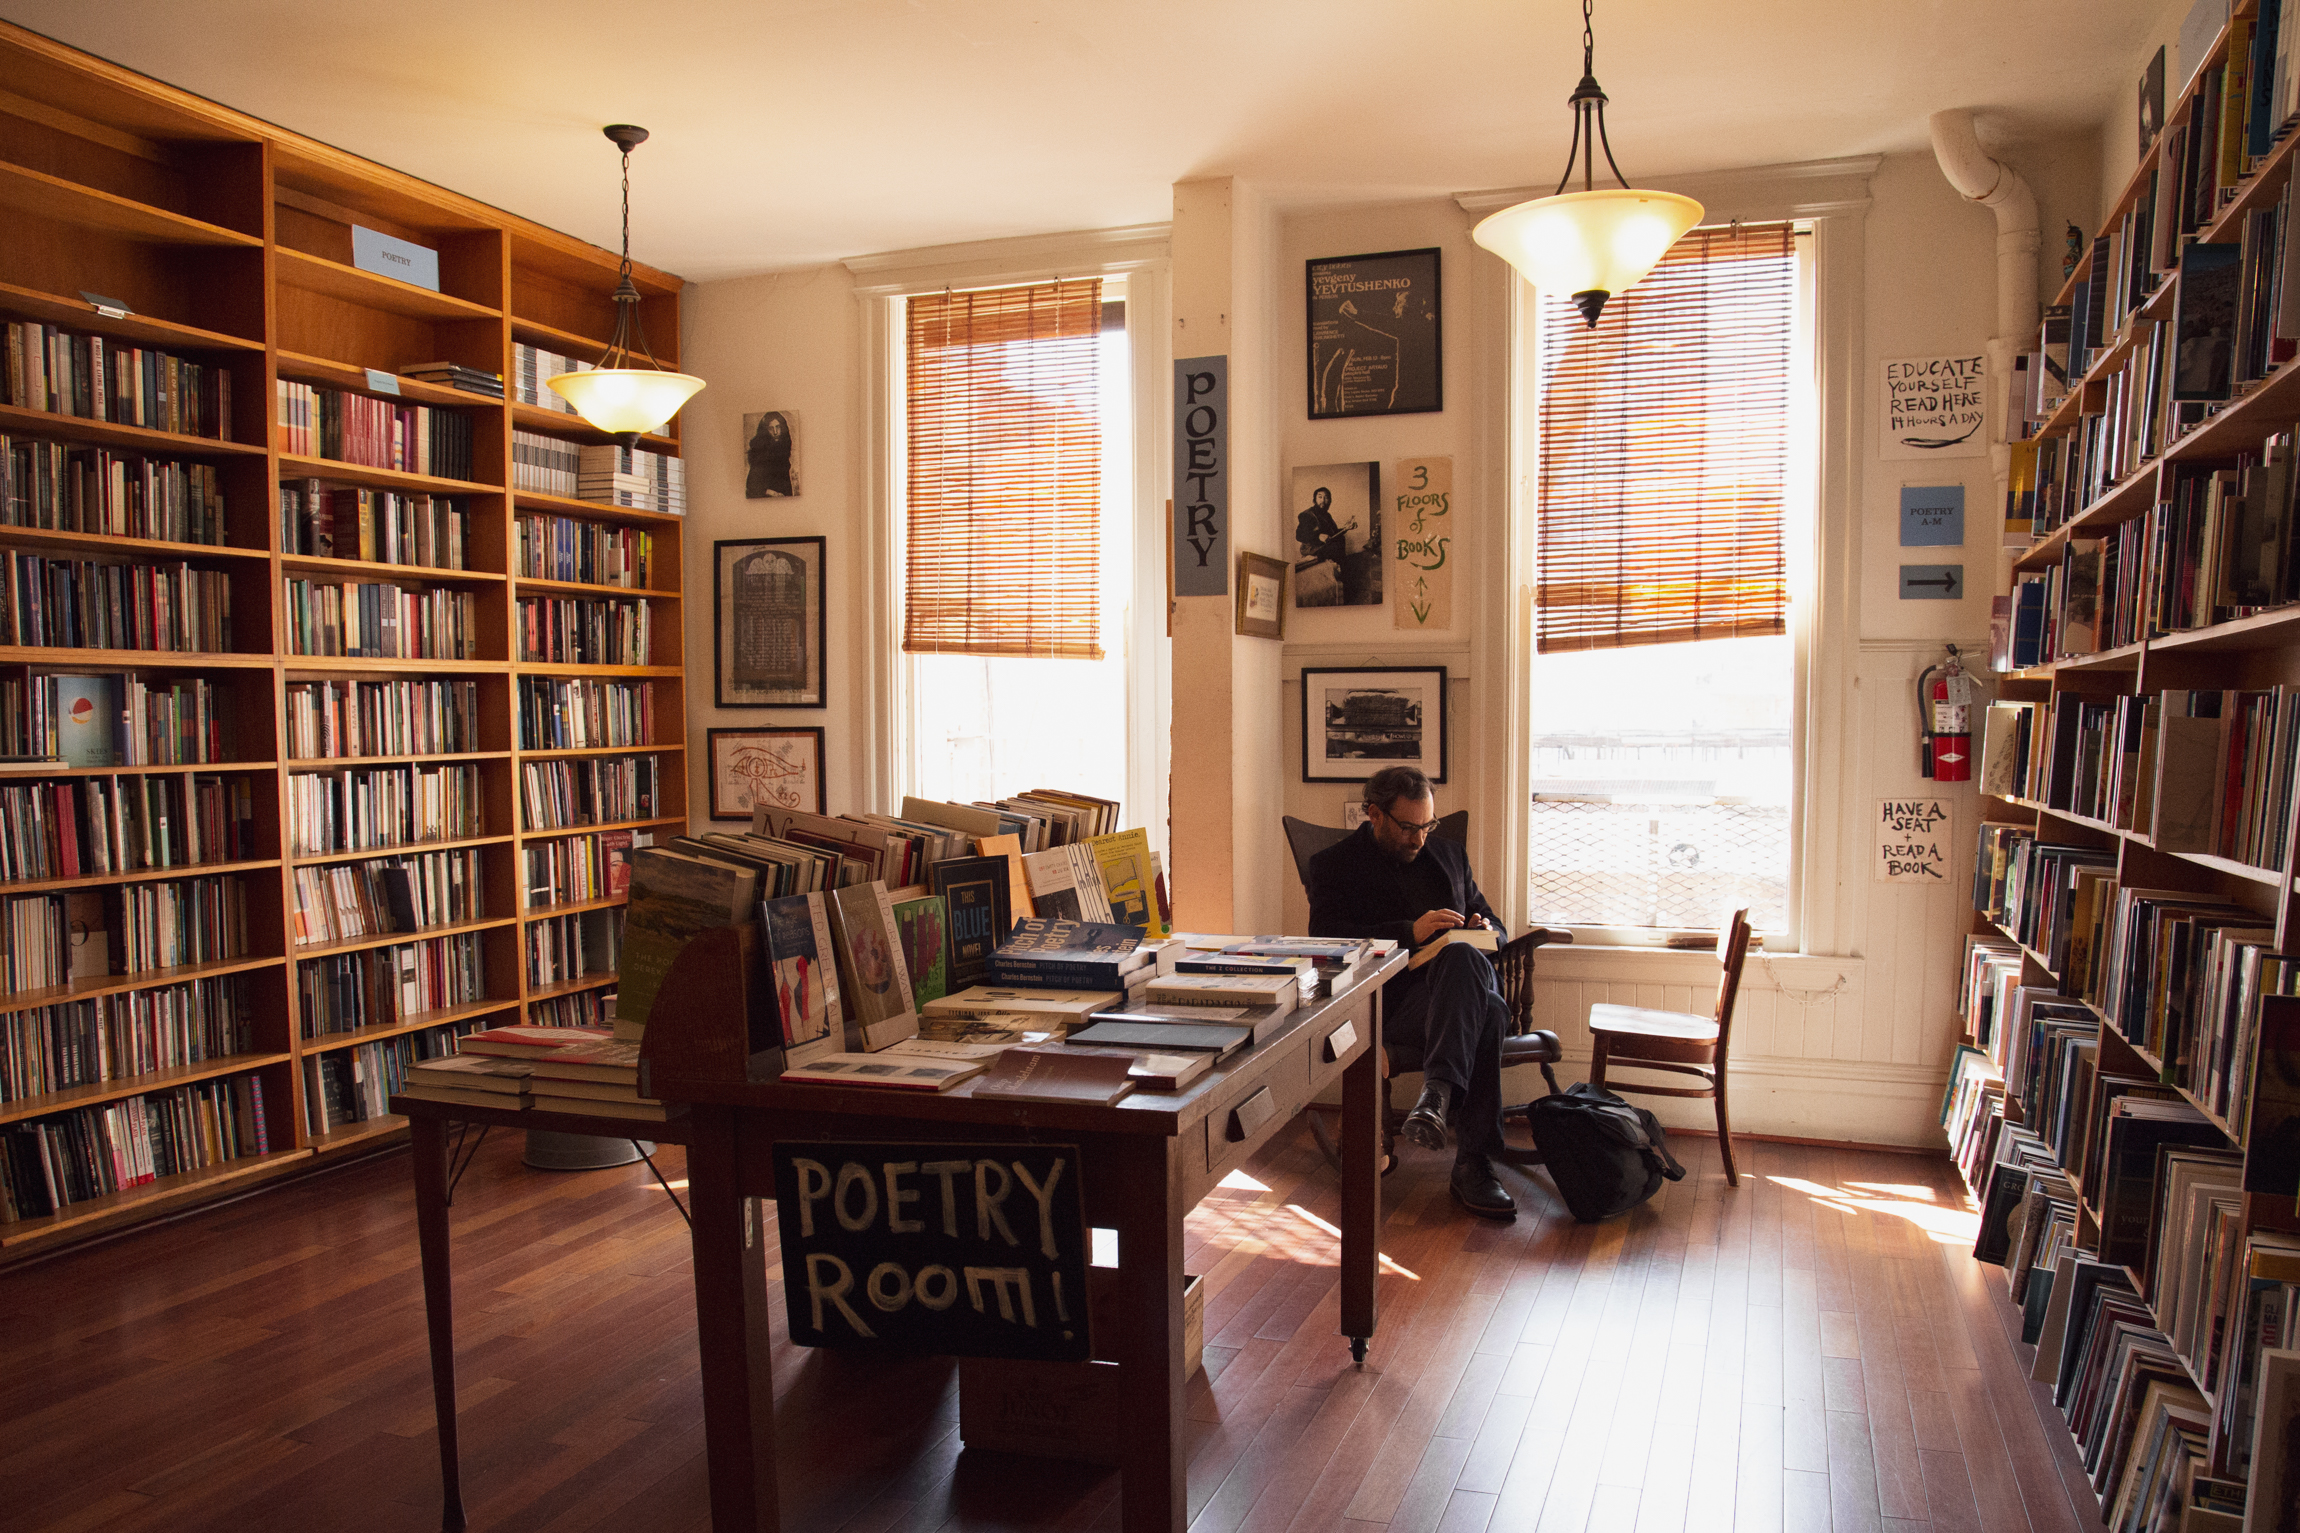 Poetry Room